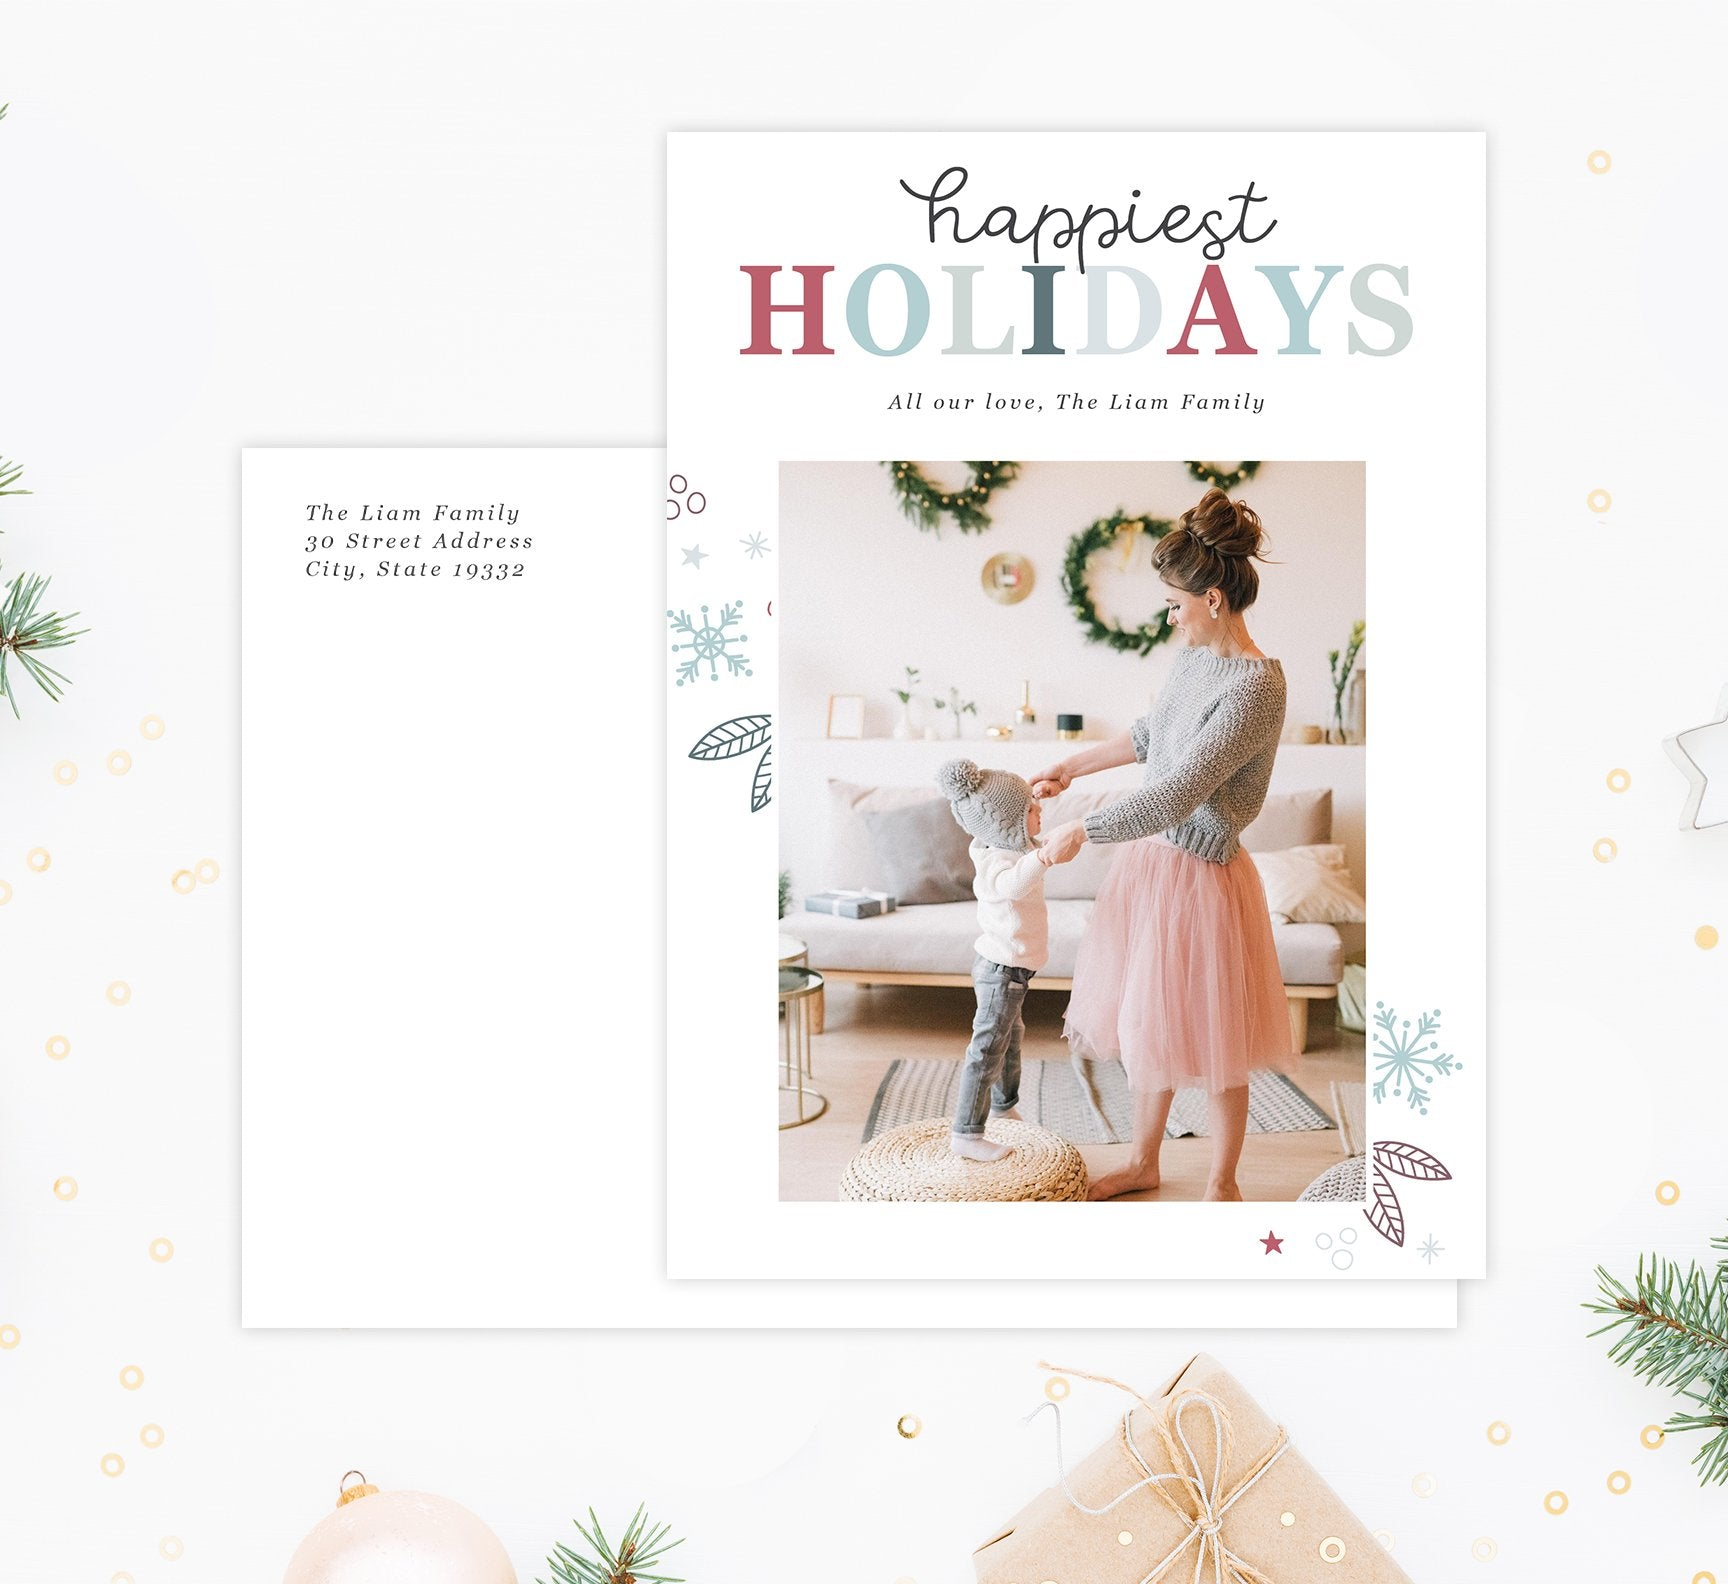 Happiest Holidays Holiday Card Mockup; Holiday card with envelope and return address printed on it.